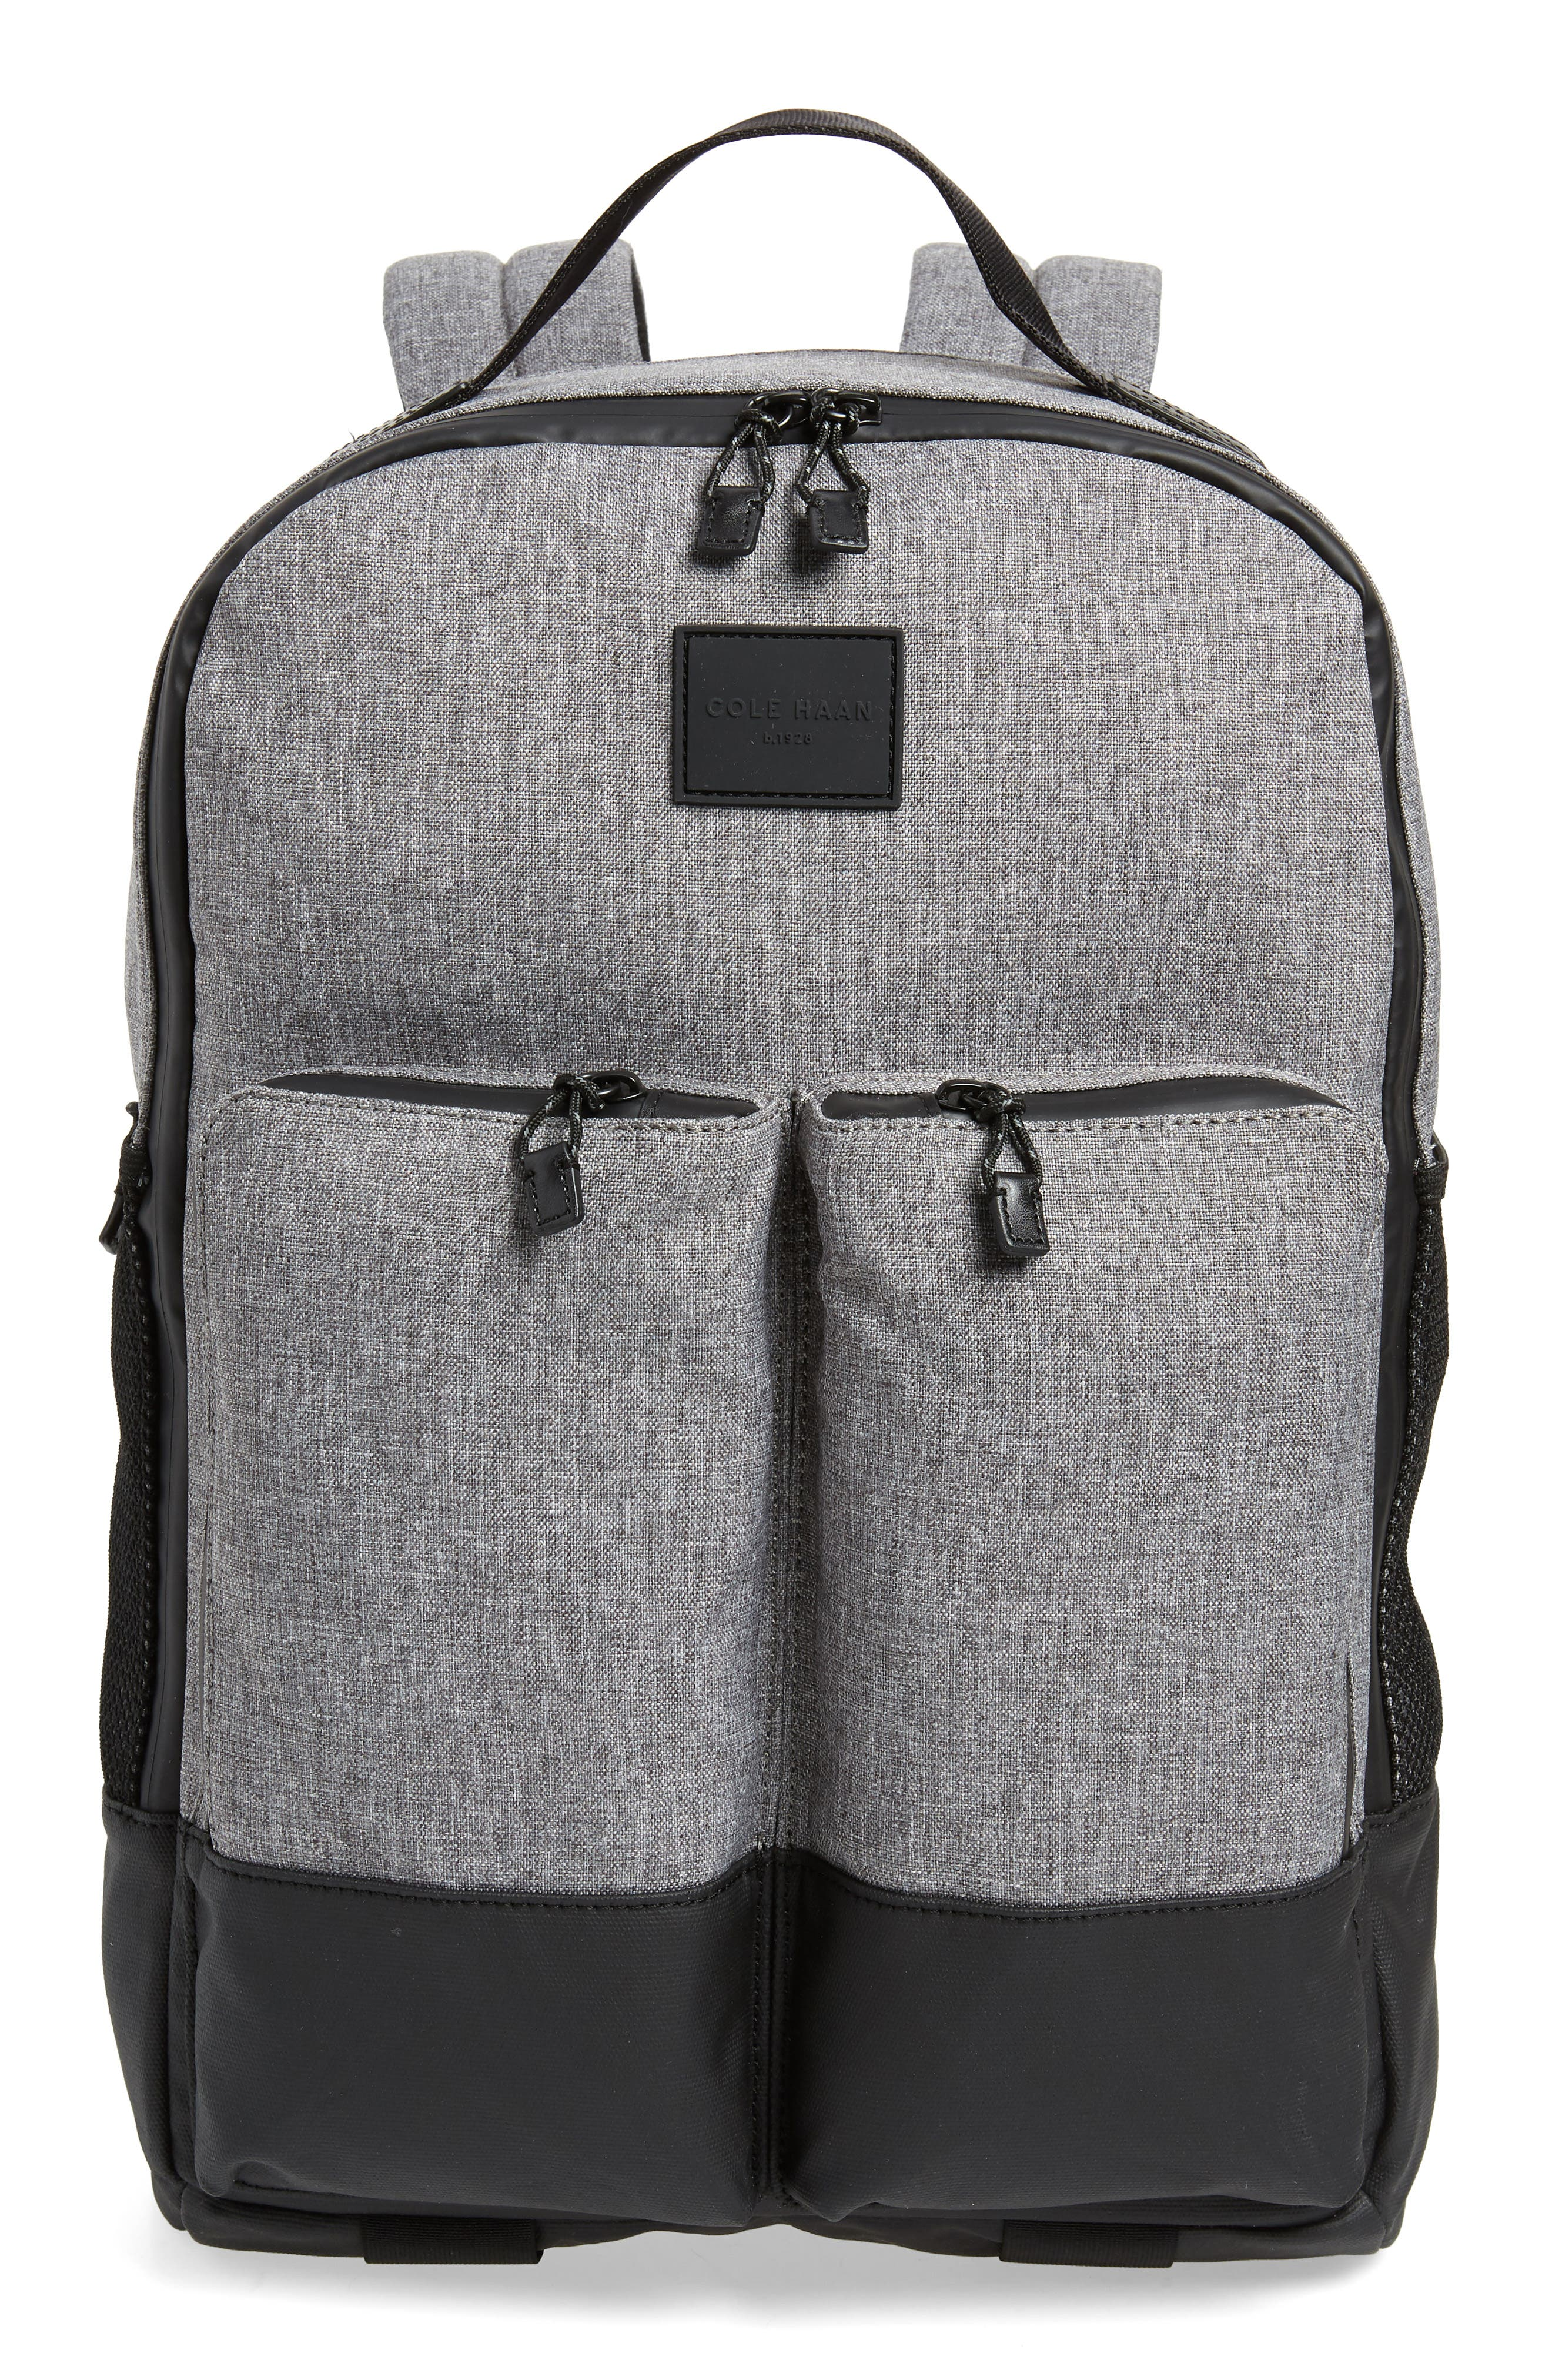 COLE HAAN Sawyer Trail Backpack, Main, color, HEATHERED GREY